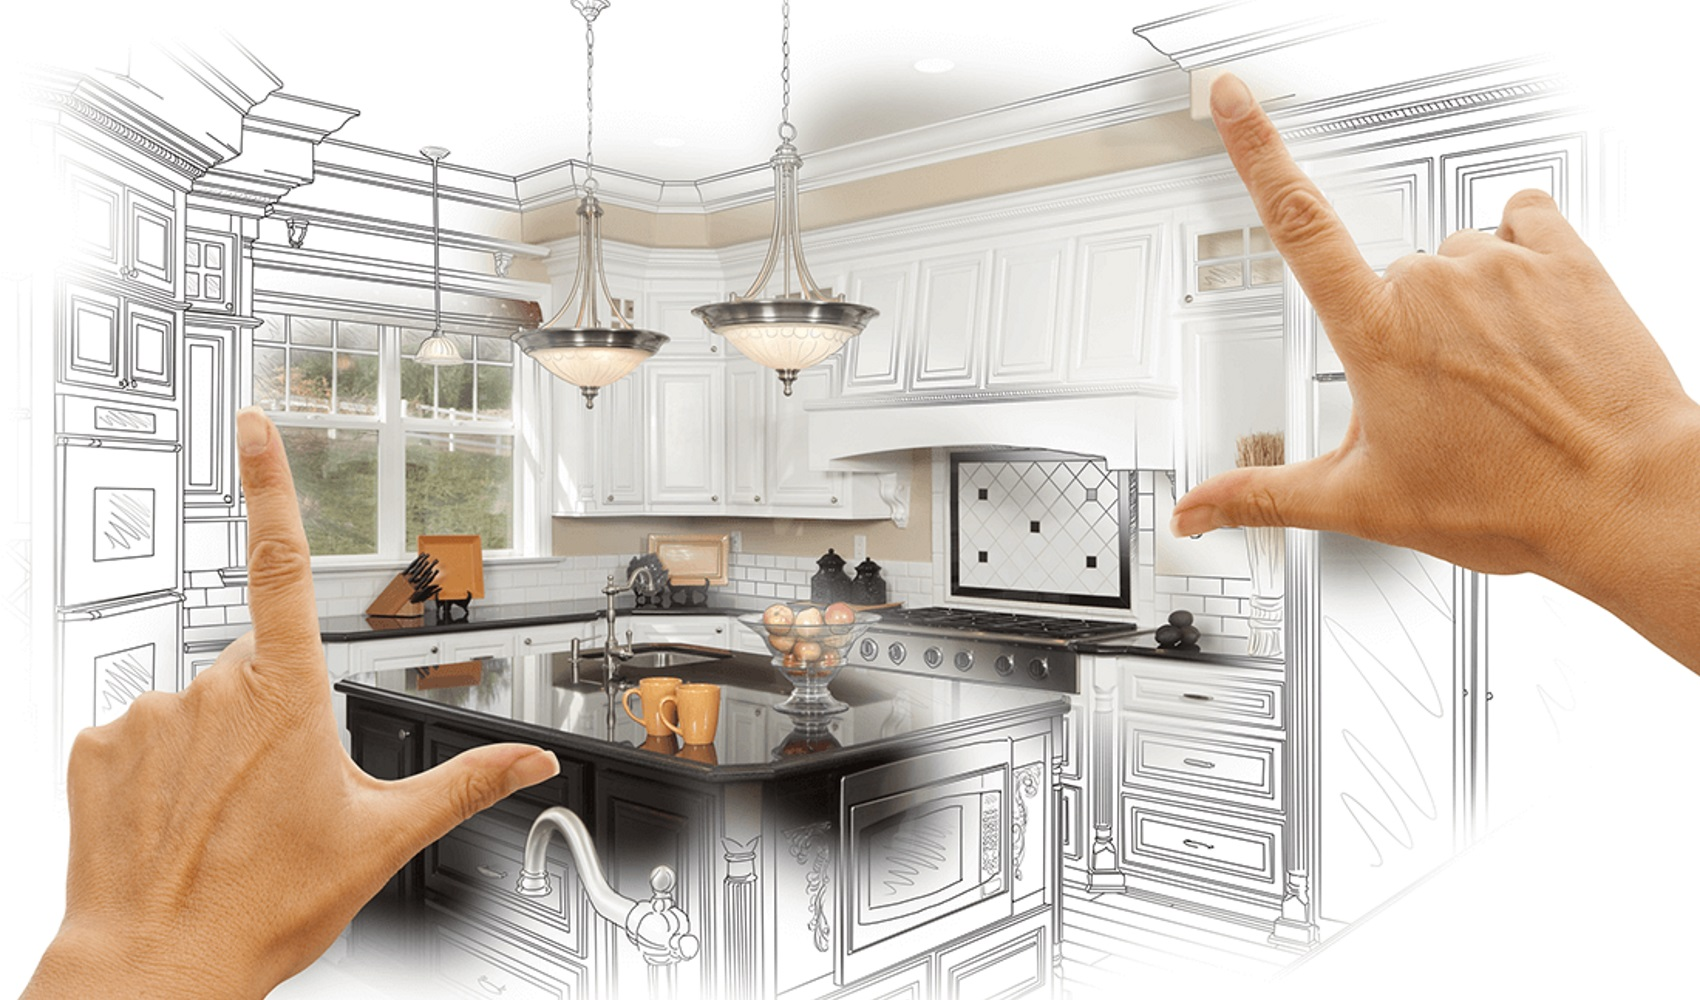 15_anchor-kitchen Full-Service Home Builder, Remodeler & Trim Specialist in Delaware - Anchor Custom Homes